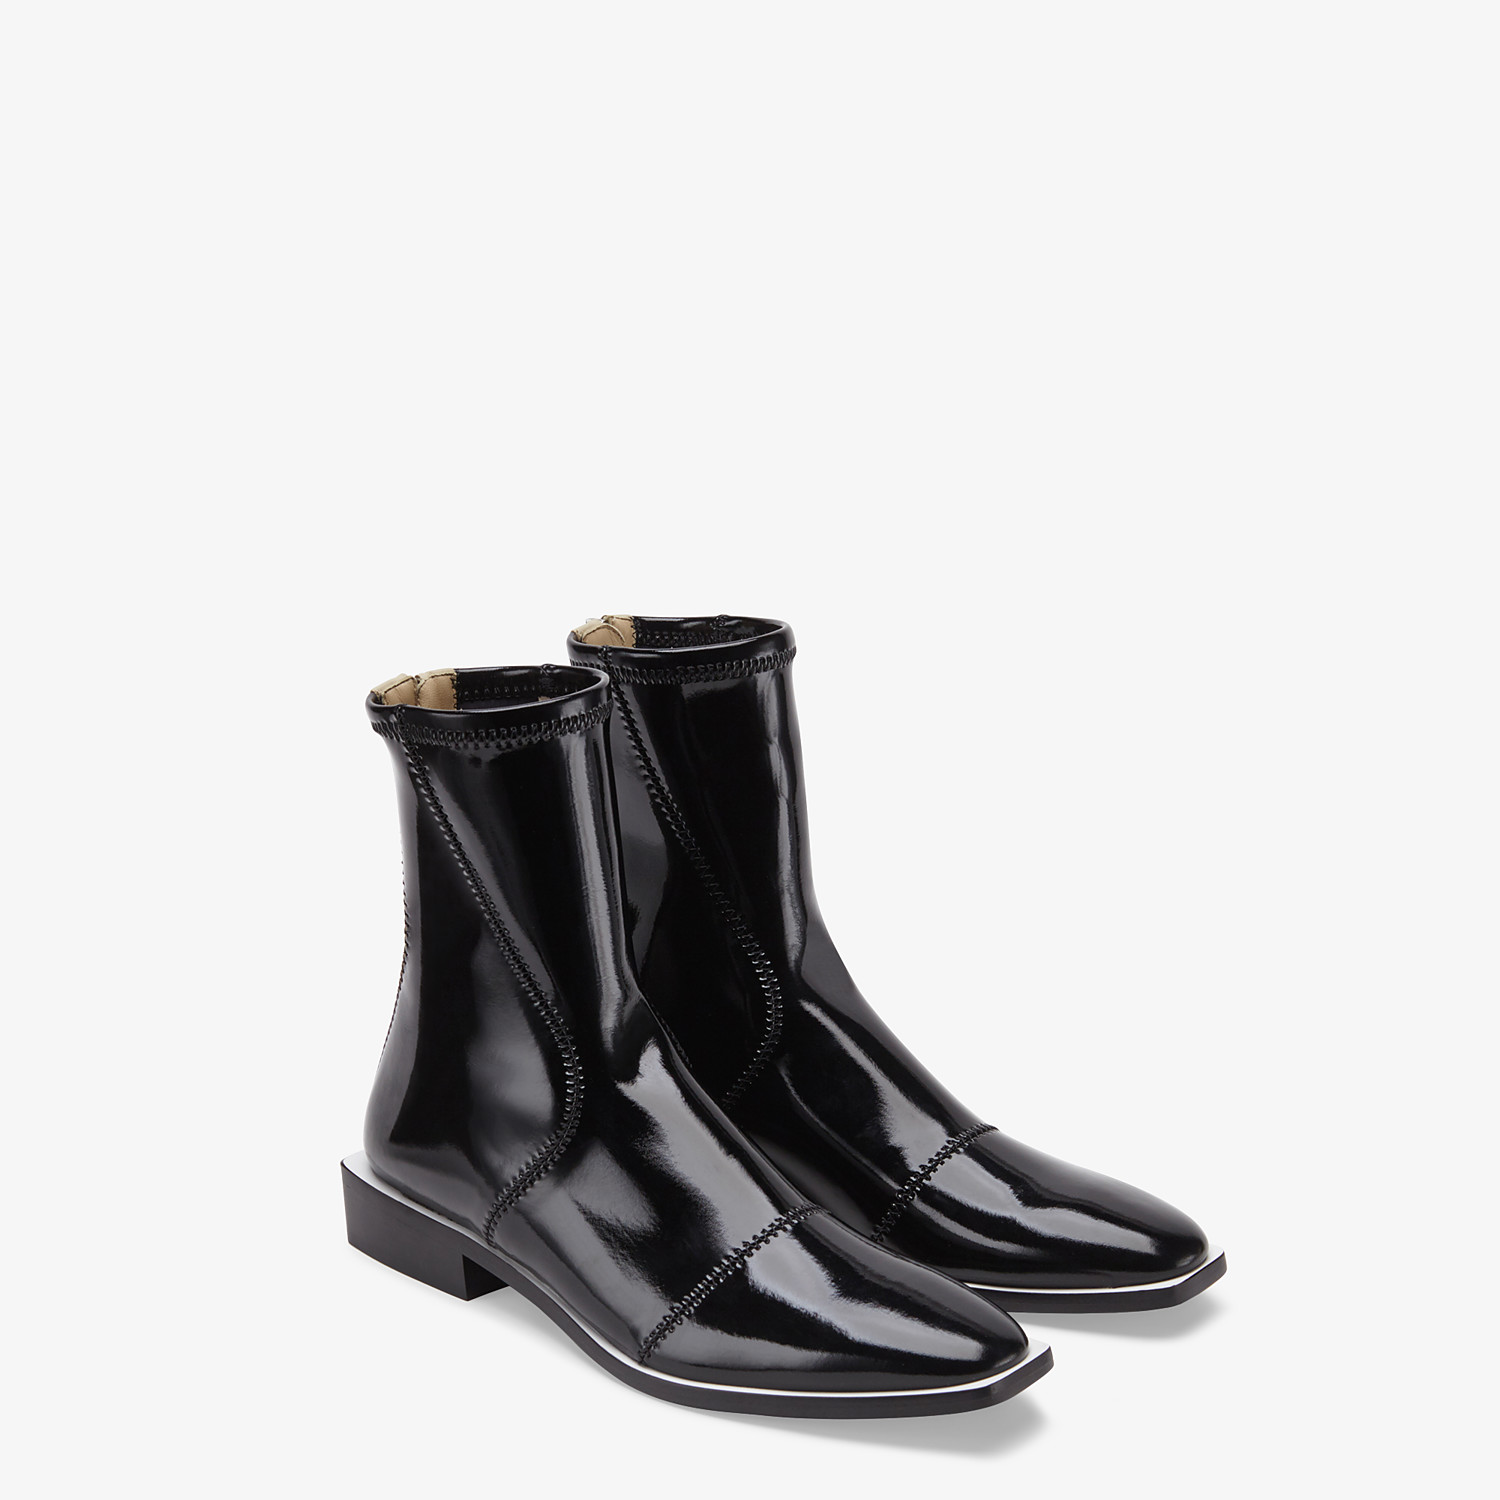 FENDI FFRAME - Glossy black neoprene low ankle boots - view 4 detail